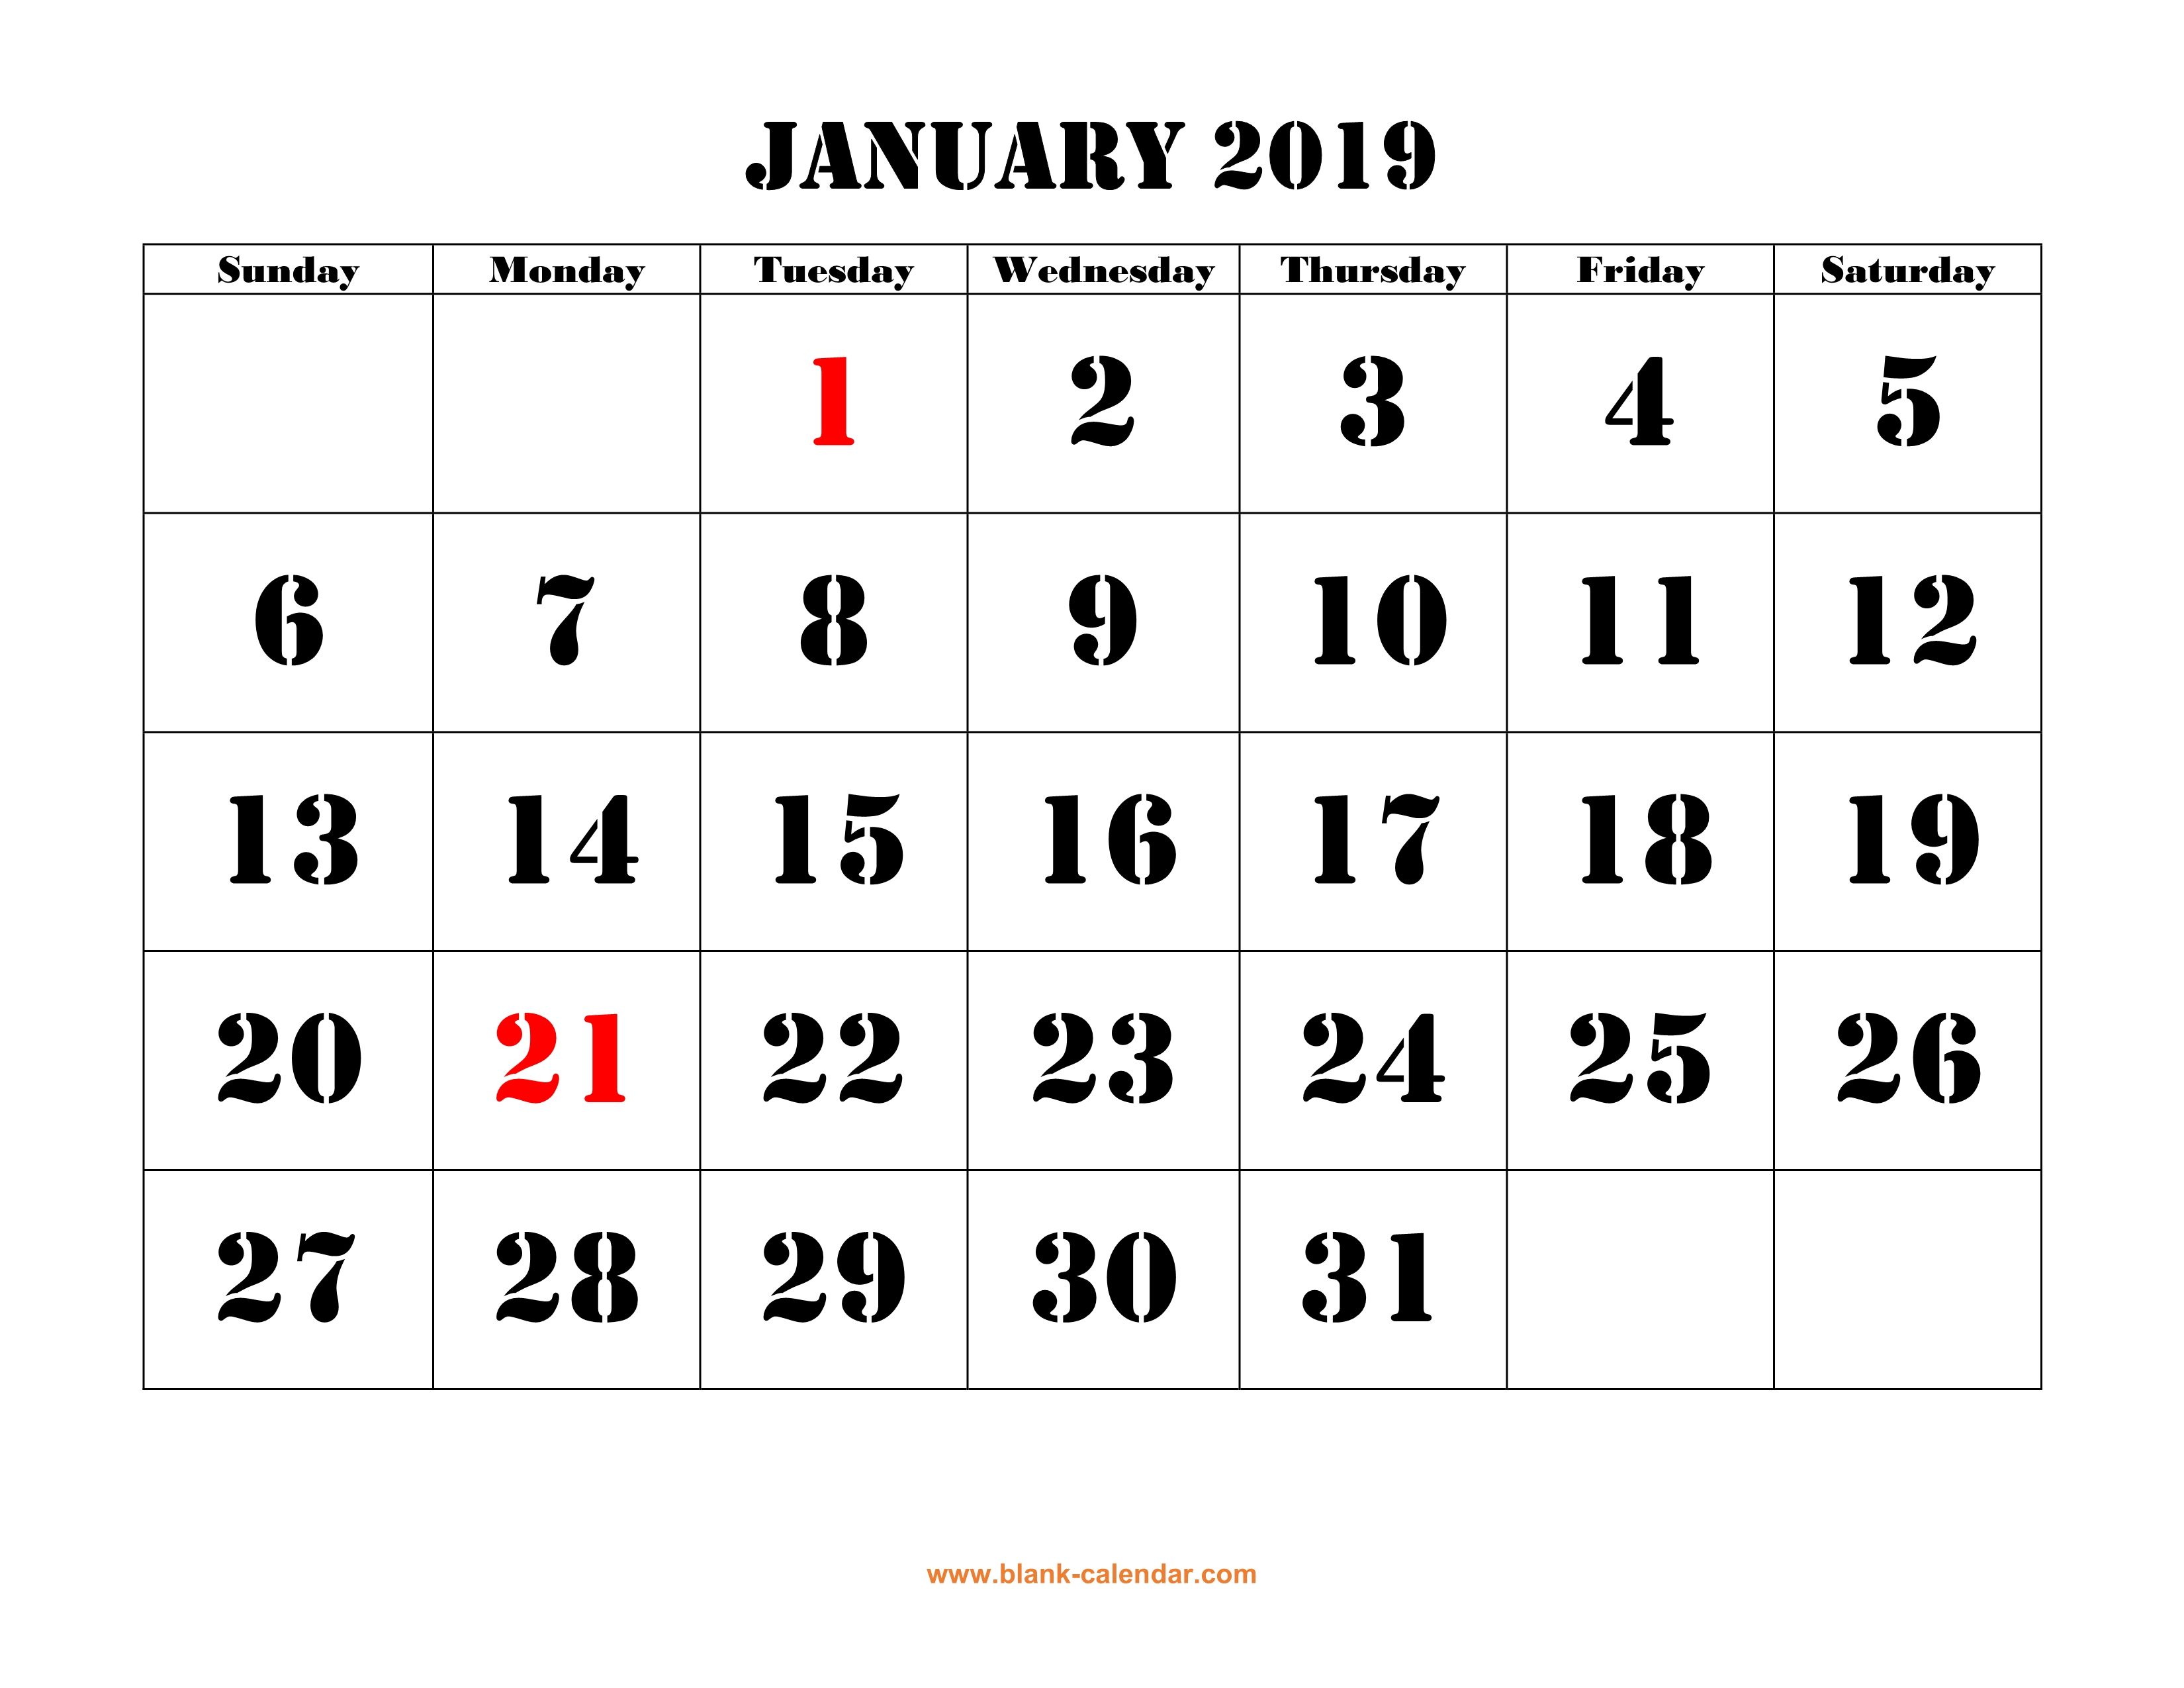 Free Download Printable January 2019 Calendar, Large Font Design pertaining to January Calendar Printable Template With Holidays